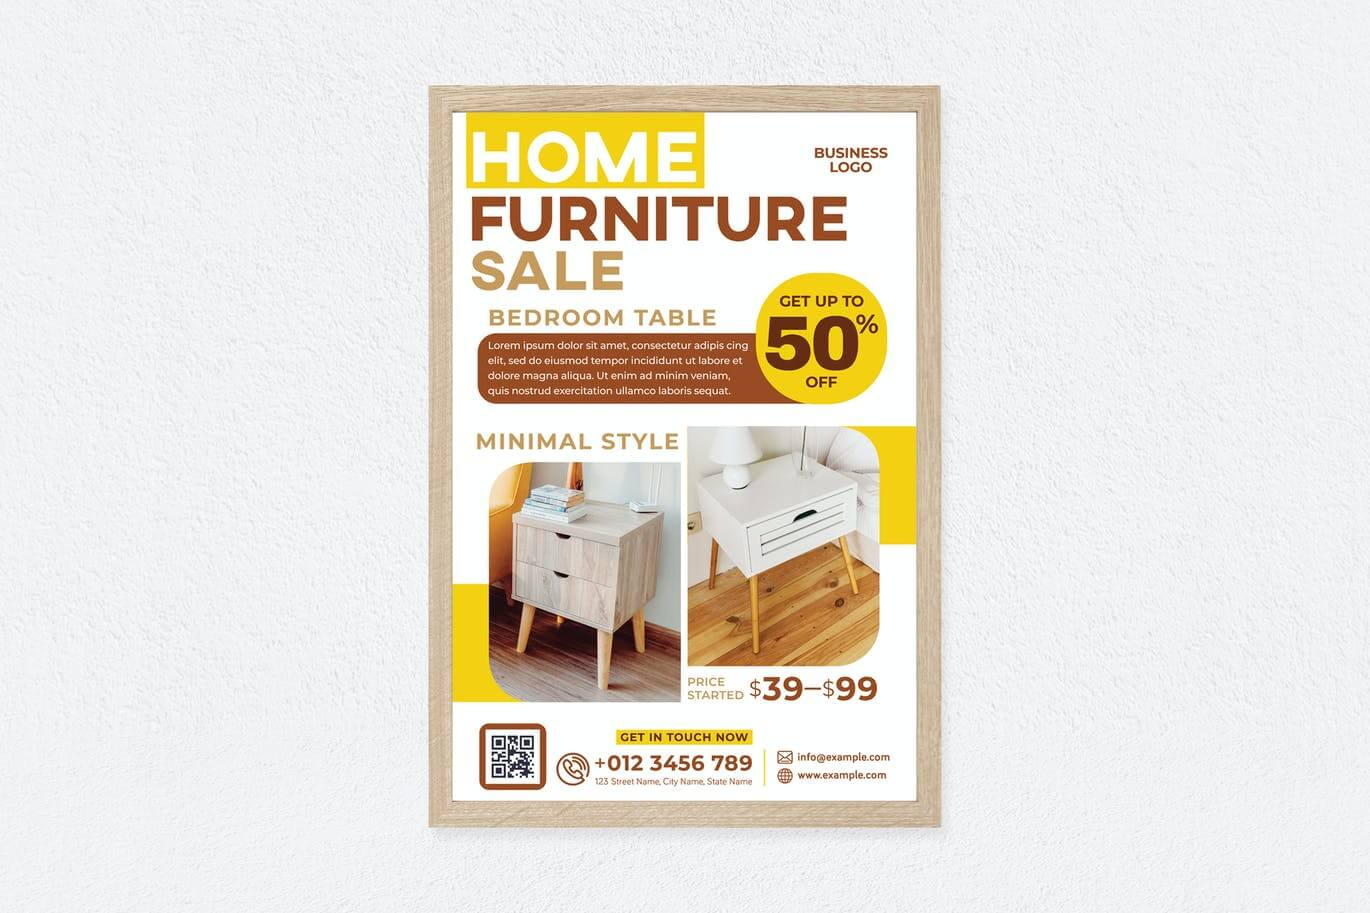 Home Furniture Sale Poster